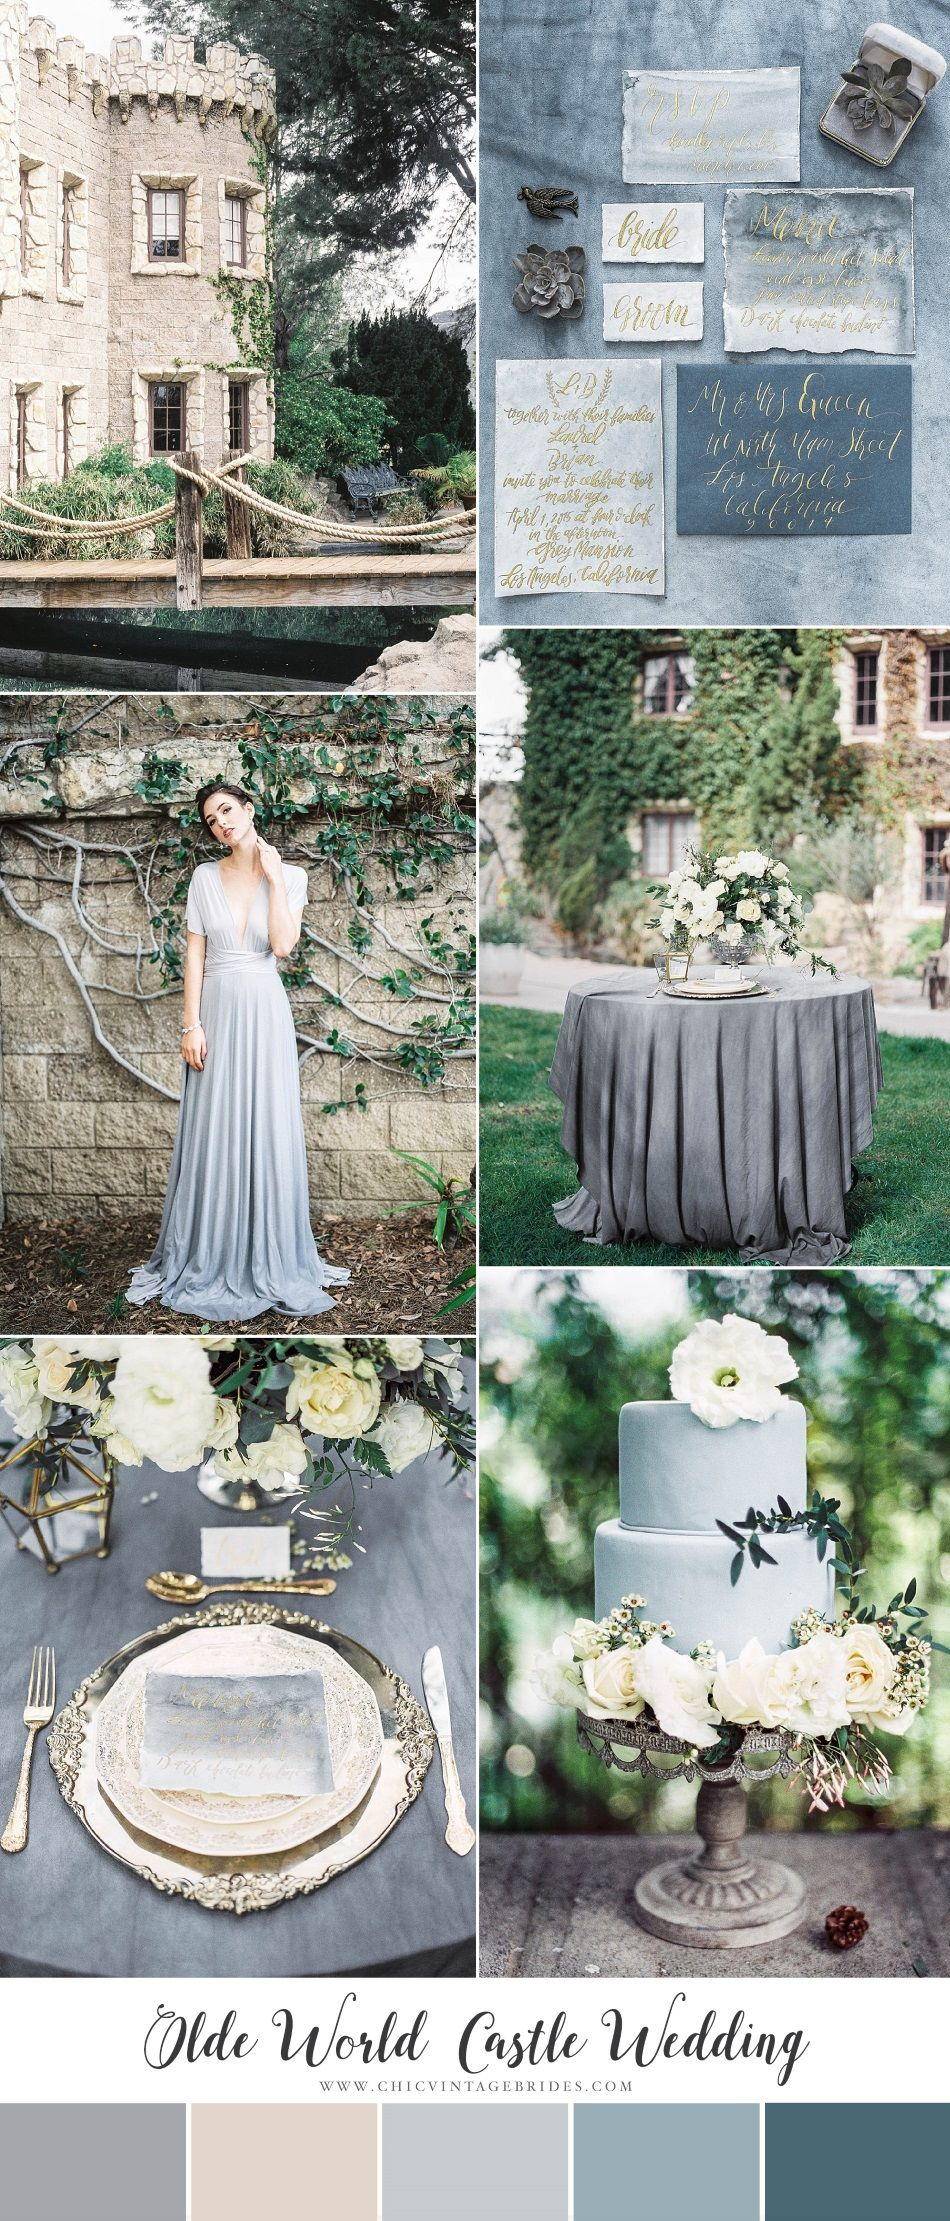 Old World Castle Wedding Inspiration - Chic Vintage Brides | Ethereal  wedding, Castle wedding inspiration, Ethereal wedding inspiration